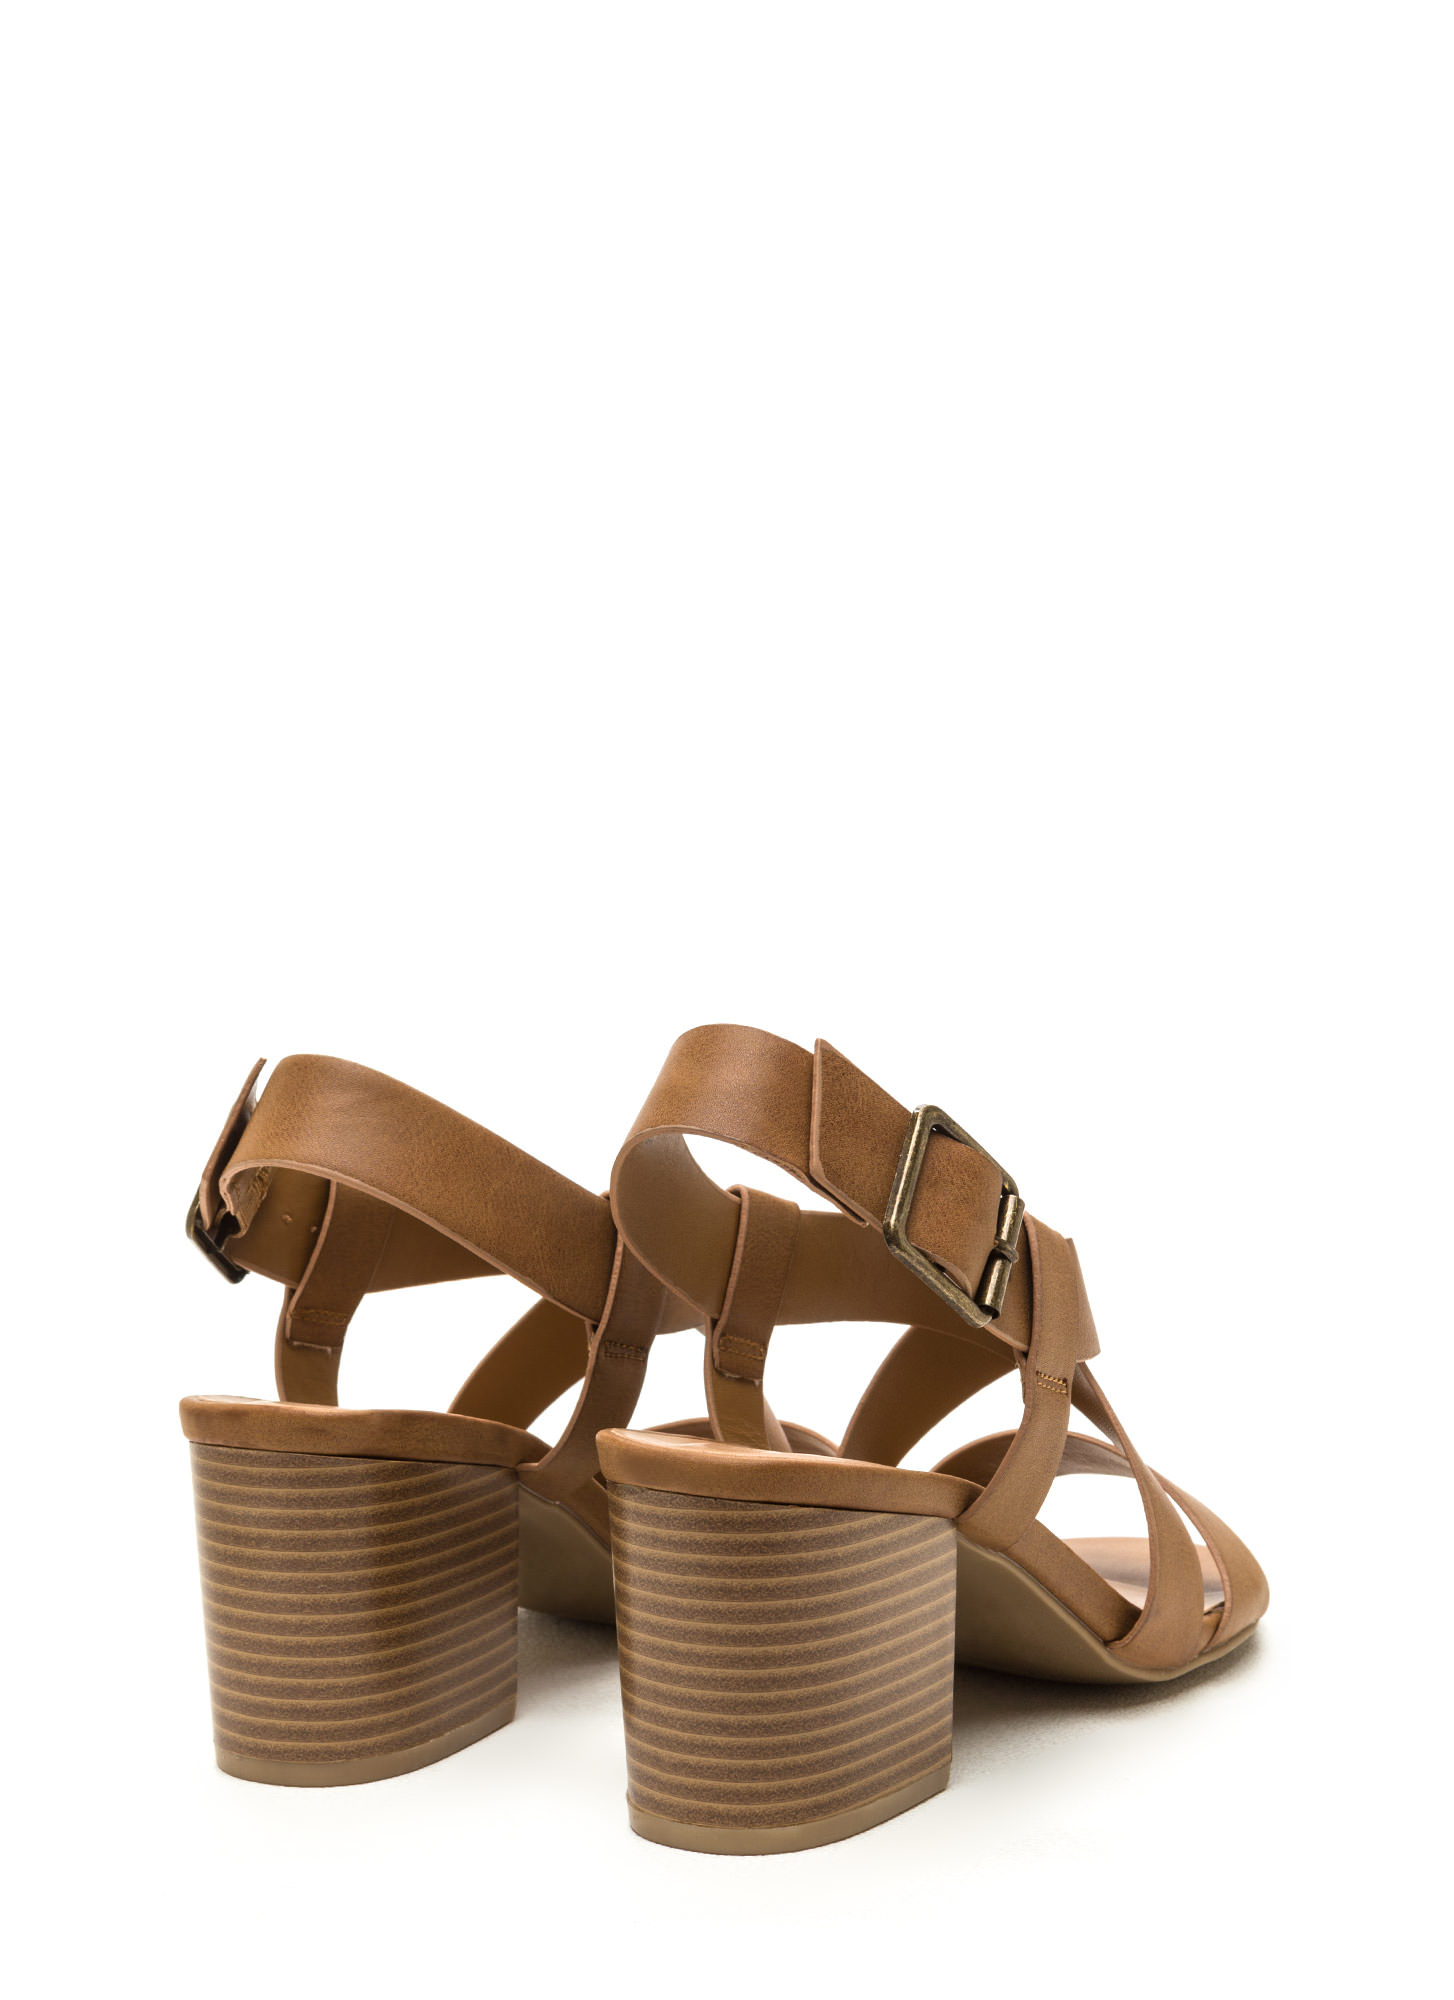 Around The Block Strappy Chunky Heels TAN